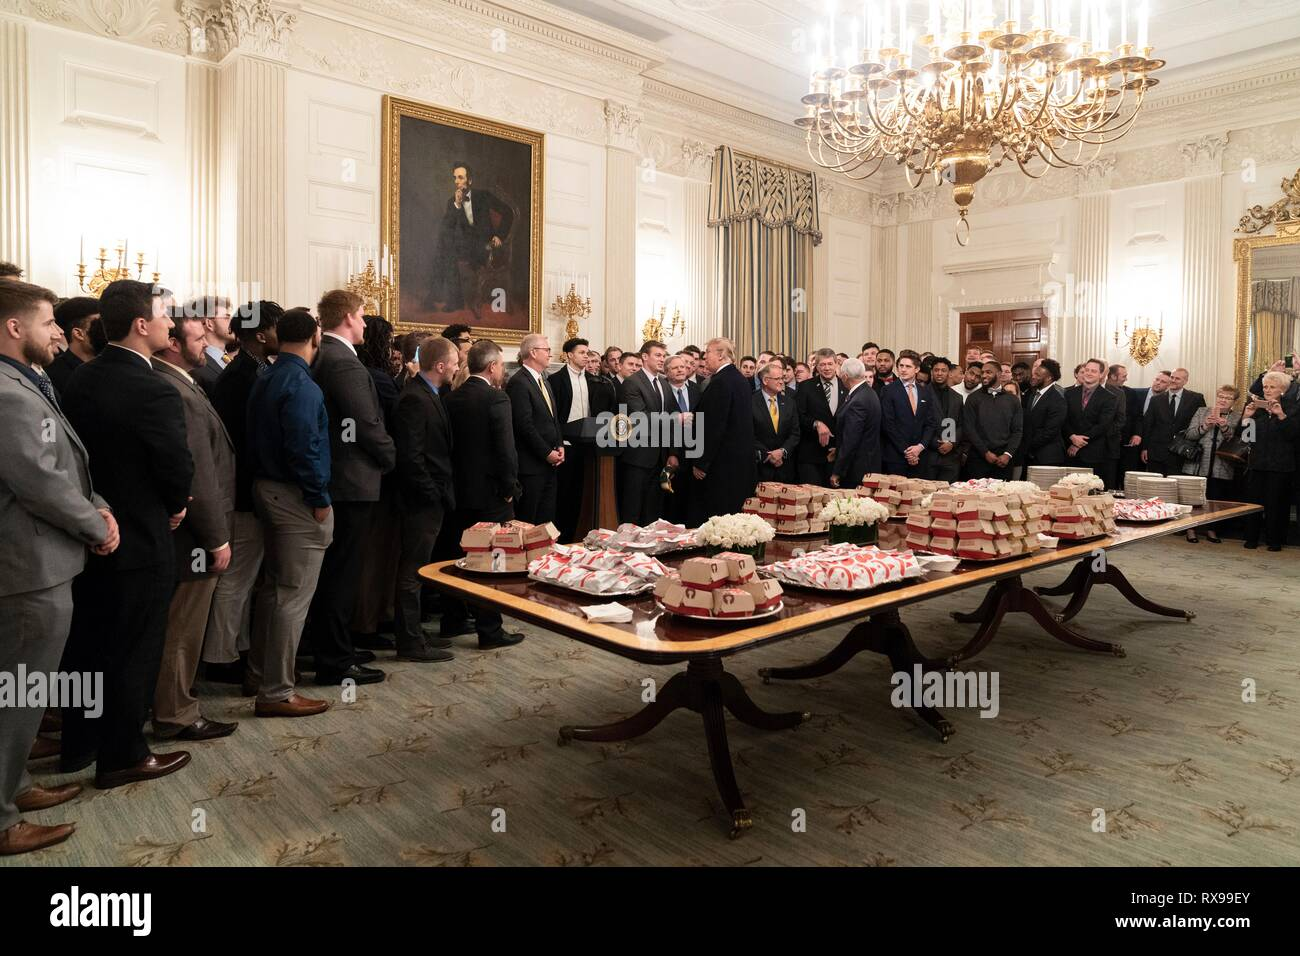 U.S President Donald Trump welcomes players with the 2018 FCS Division I Football National Champions North Dakota Bisons to a lunch of fast-food in the State Dining Room of the White House March 4, 2019 in Washington, DC. - Stock Image